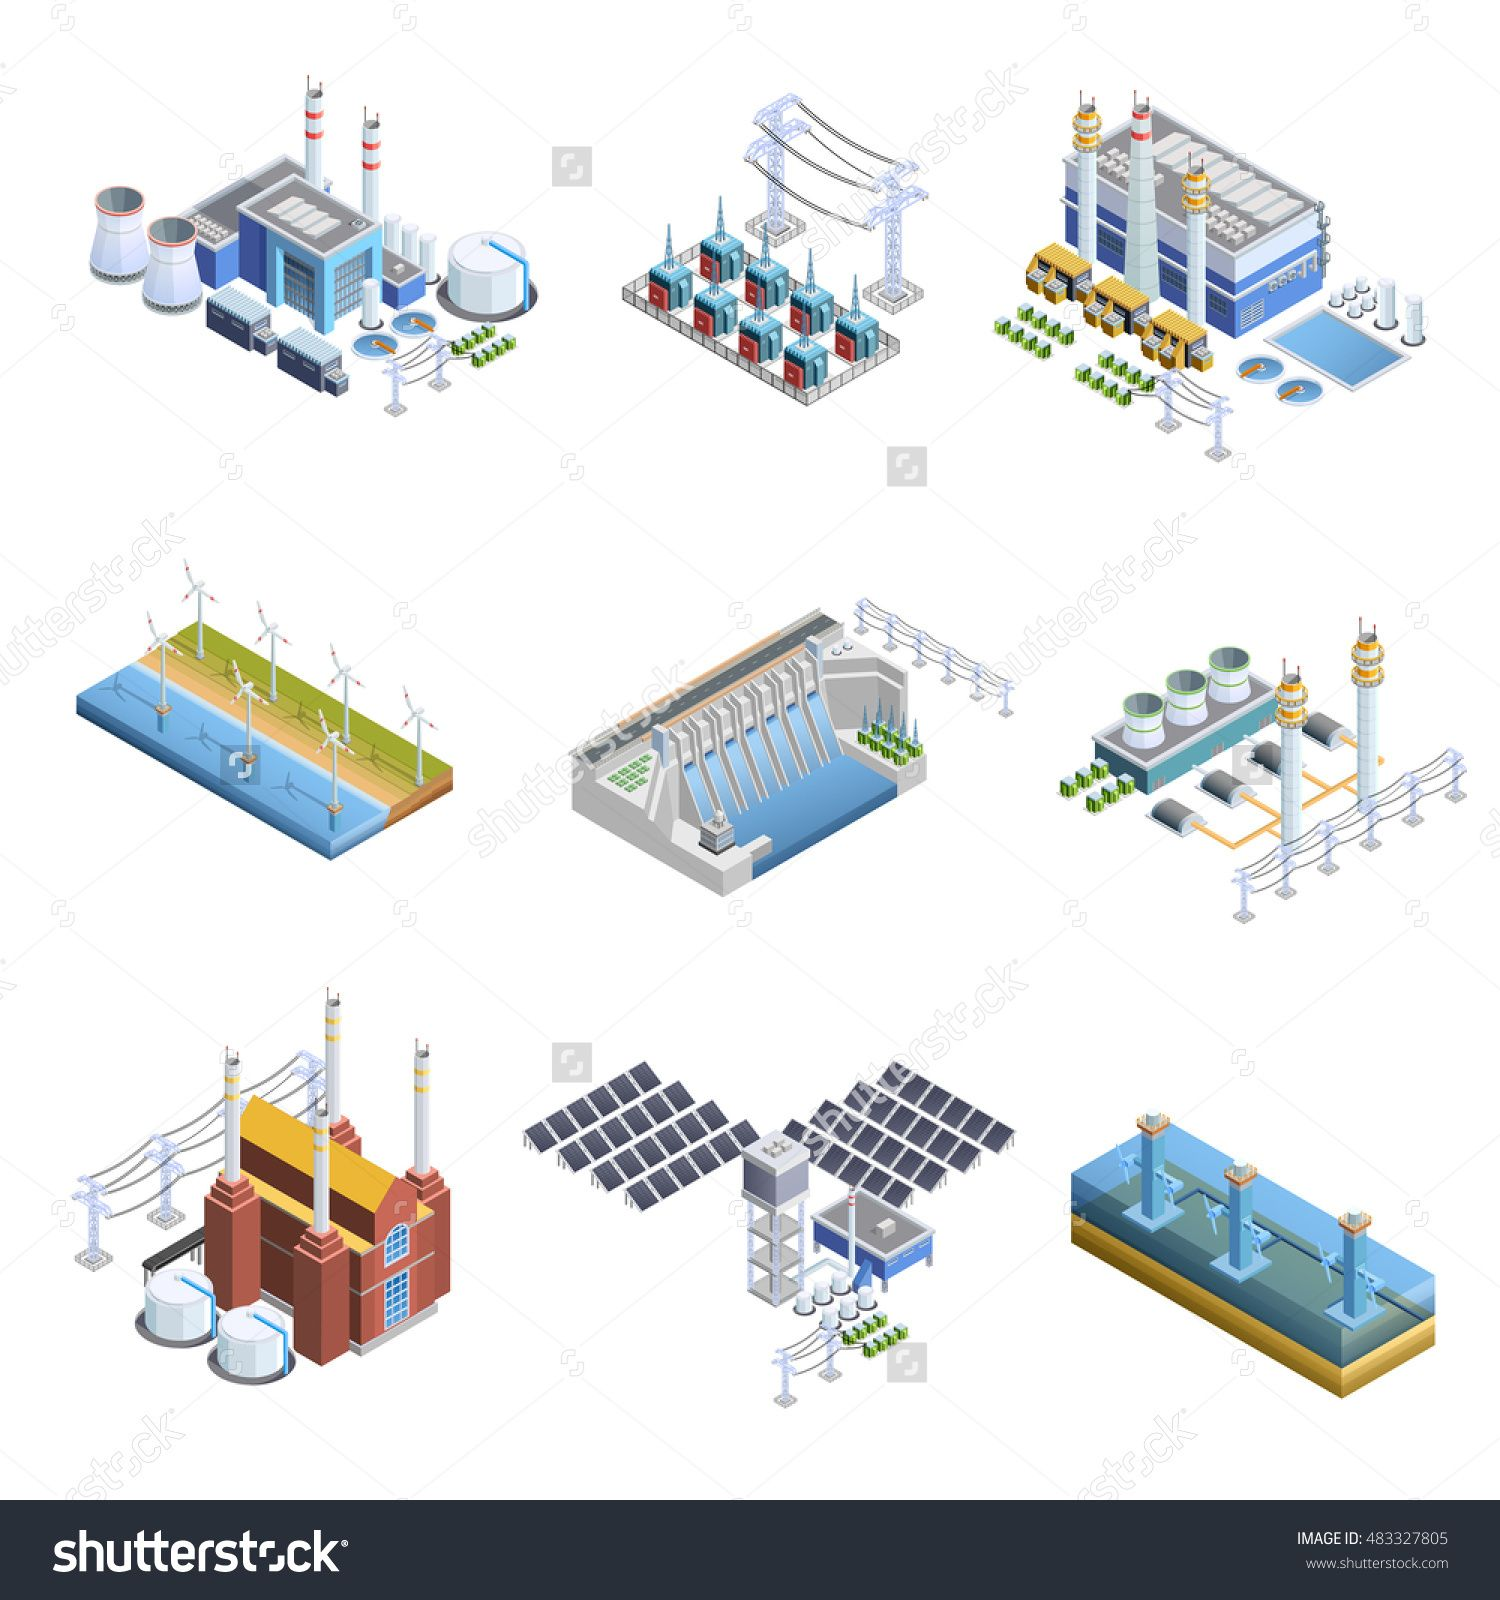 Isometric images set of different types of electricity generation